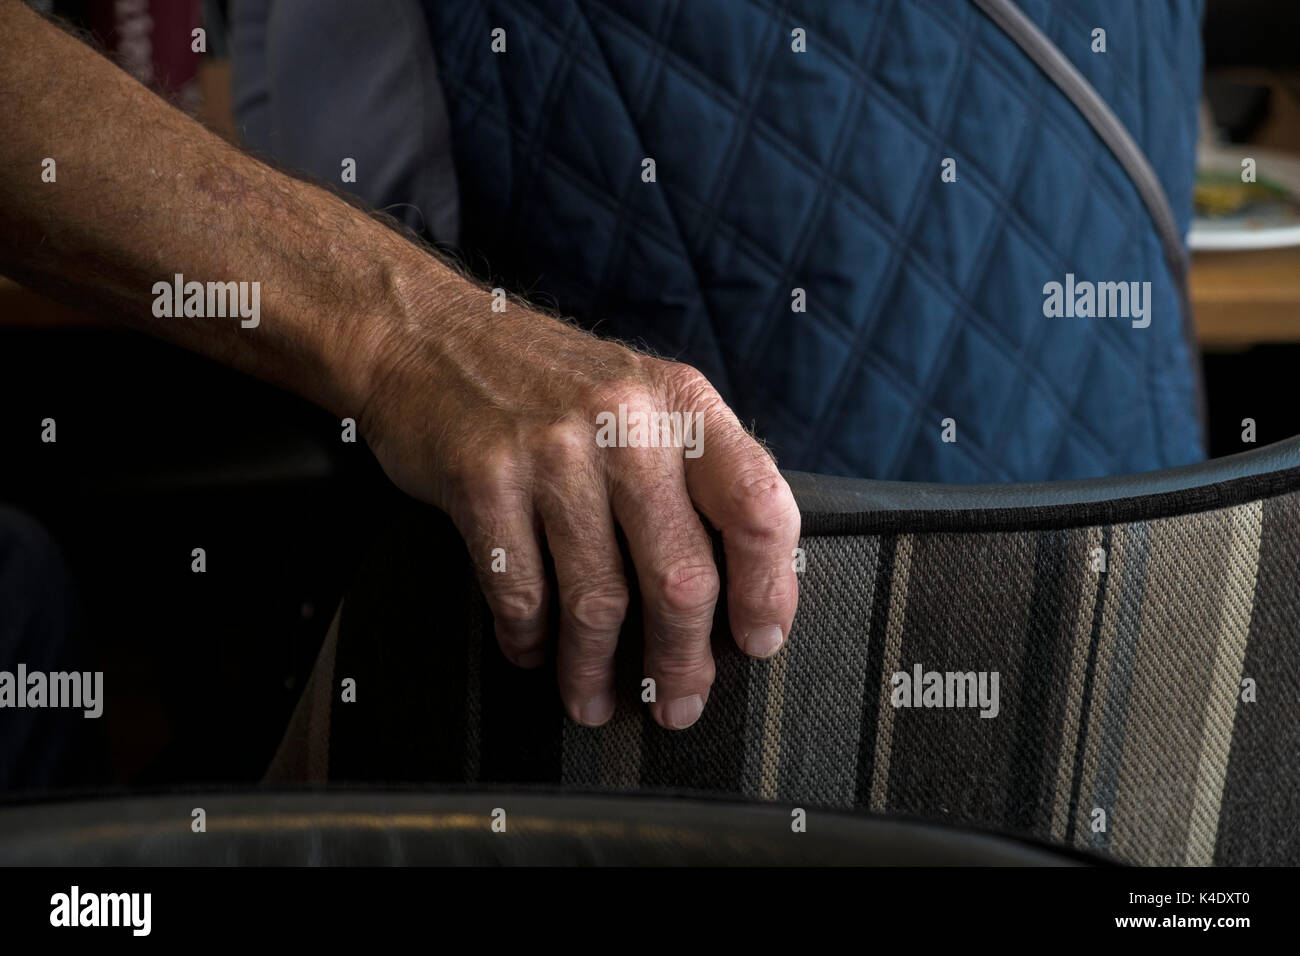 Age - the hand of an elderly person holding the back of a chair. - Stock Image